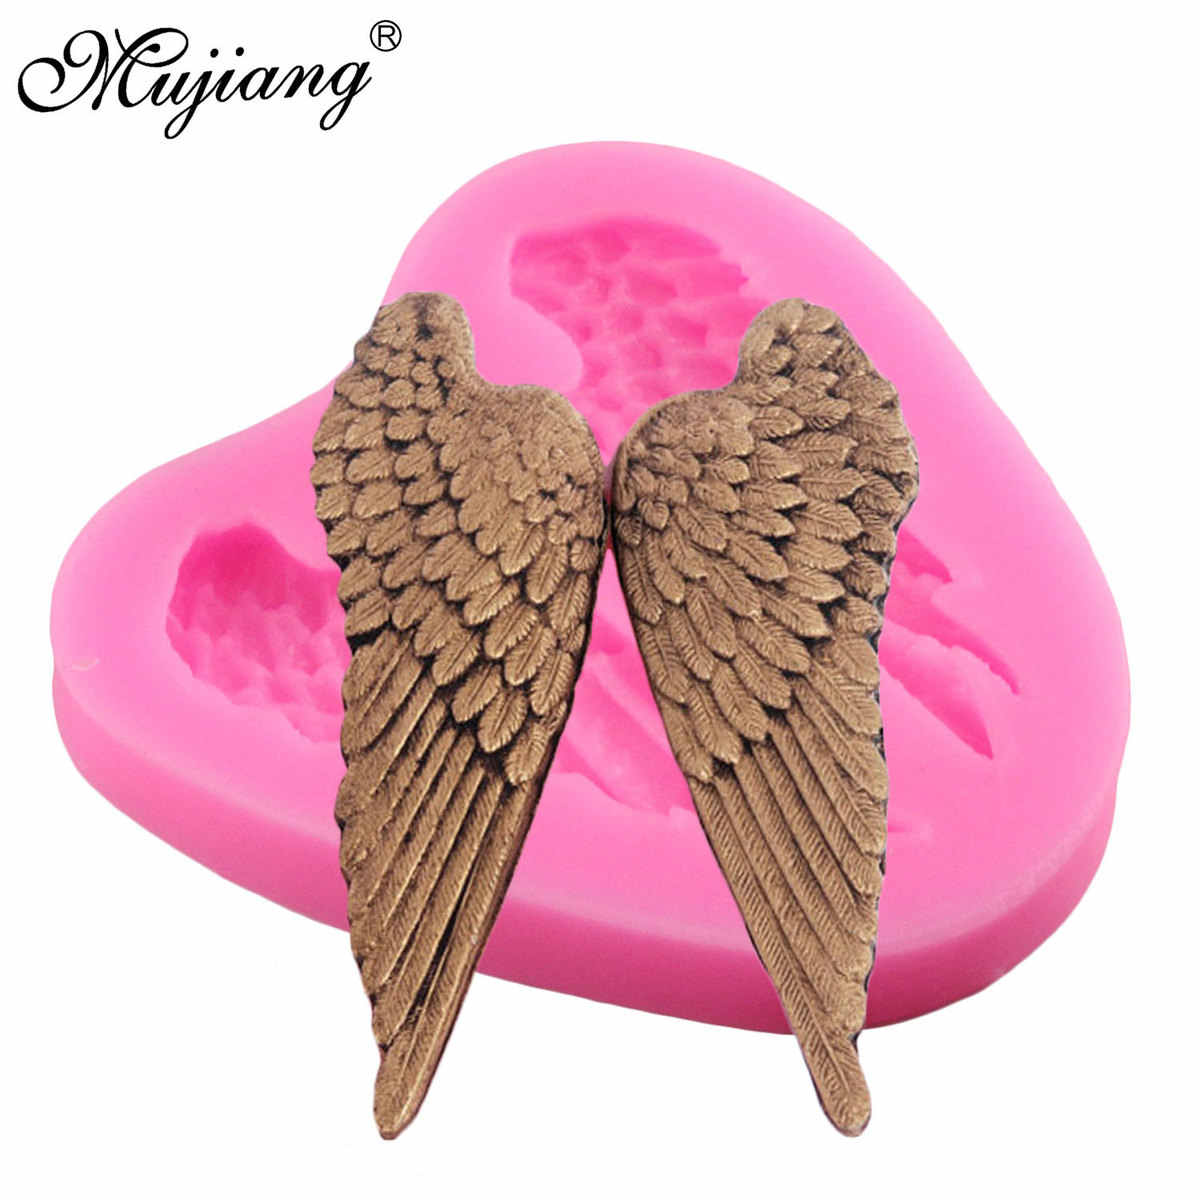 Angel Wing Silicone Mold Jelly Fondant Gum Paste Chocolate Craft Candy Polymer Clay Molds Cupcake Baking Cake Decorating Tools